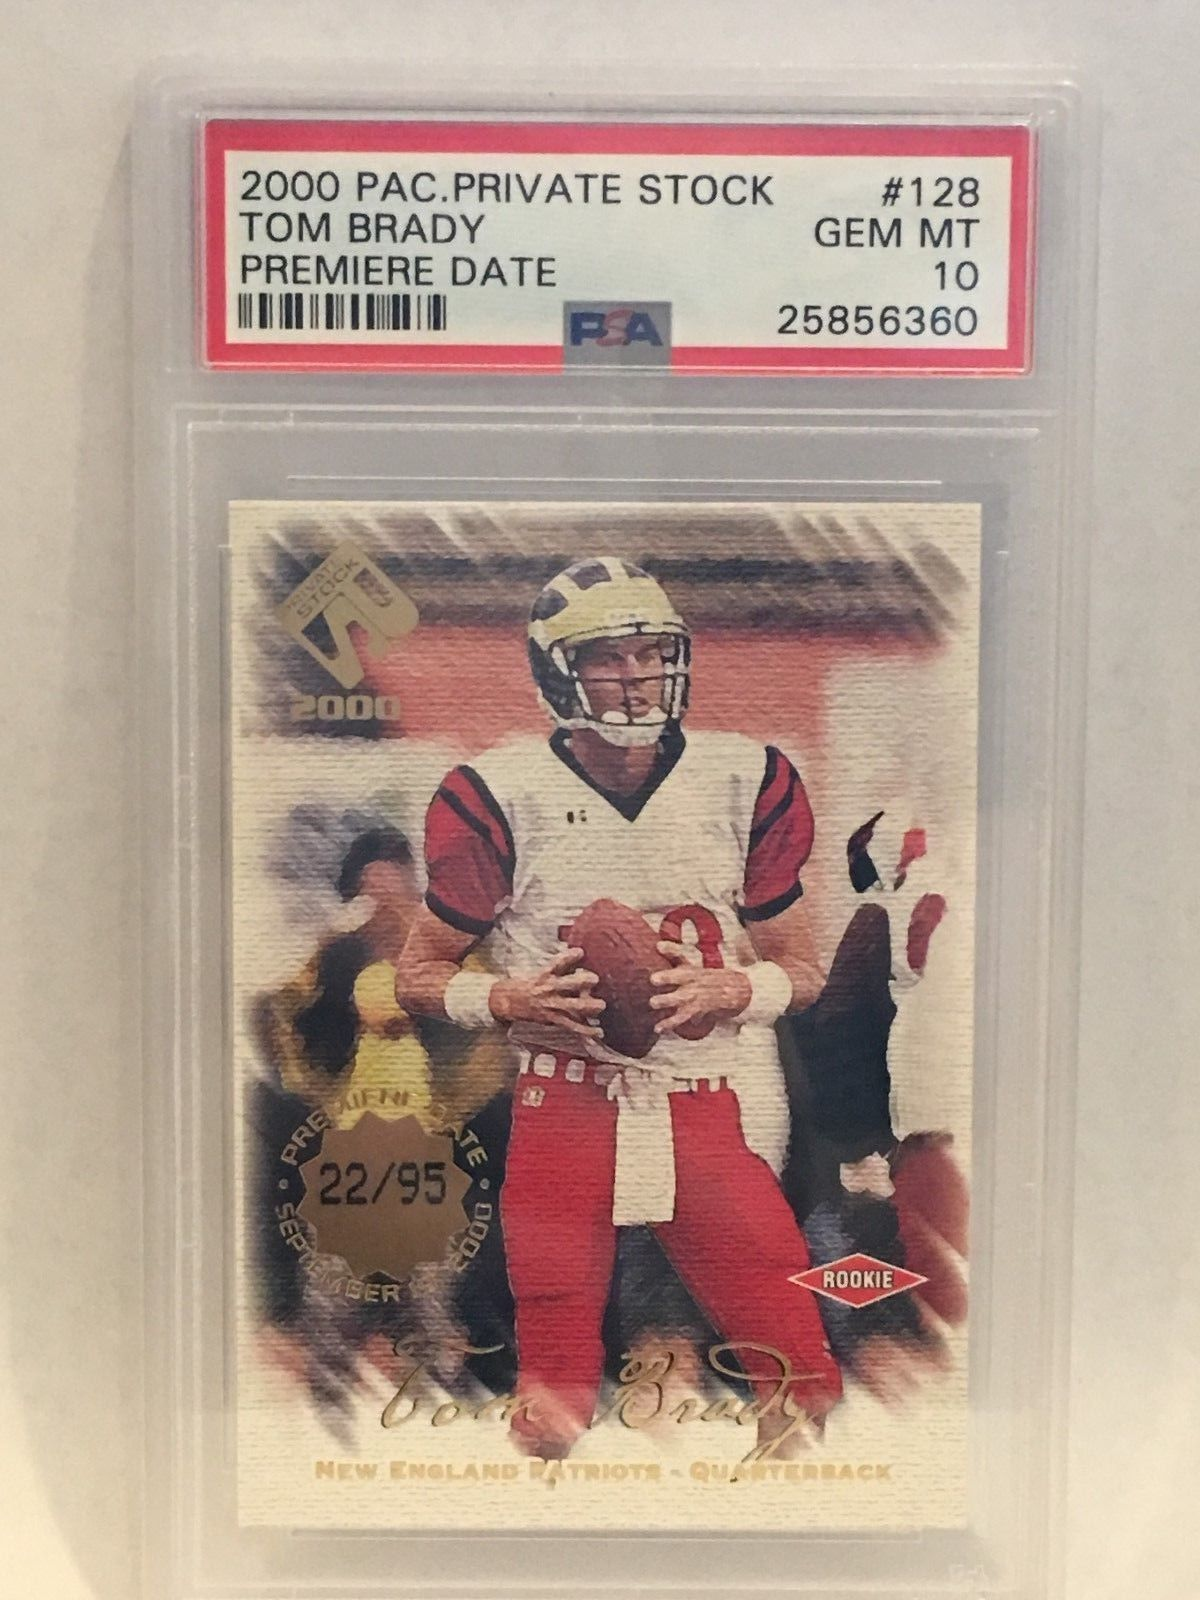 2000 TOM BRADY PACIFIC PRIVATE STOCK PREMIERE DATE ROOKIE